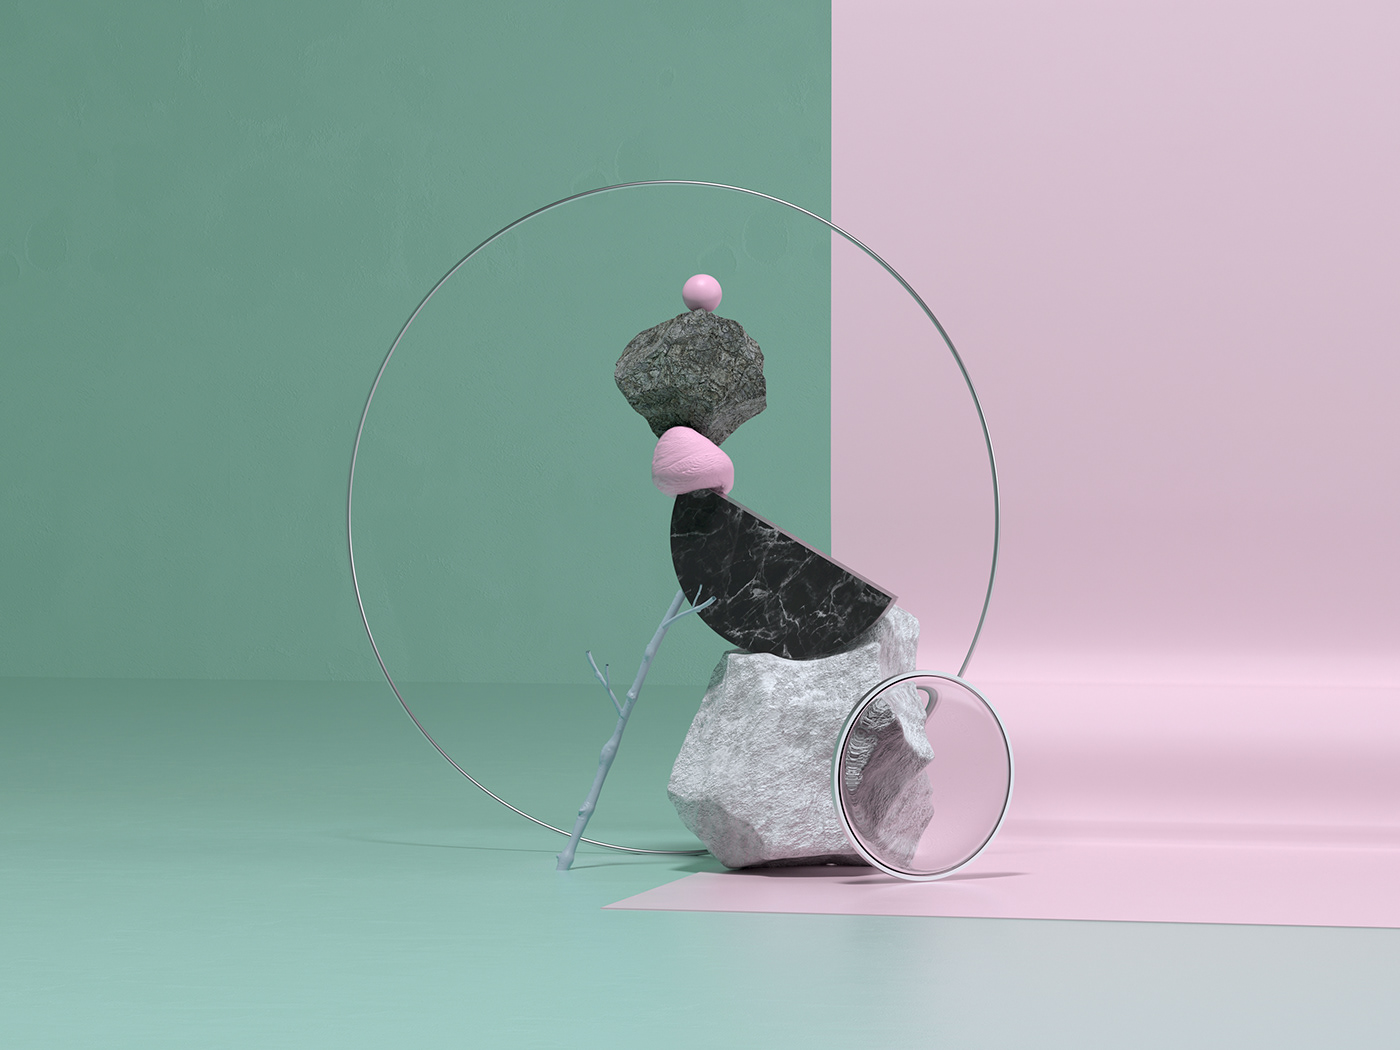 Rocky Compositions on Behance